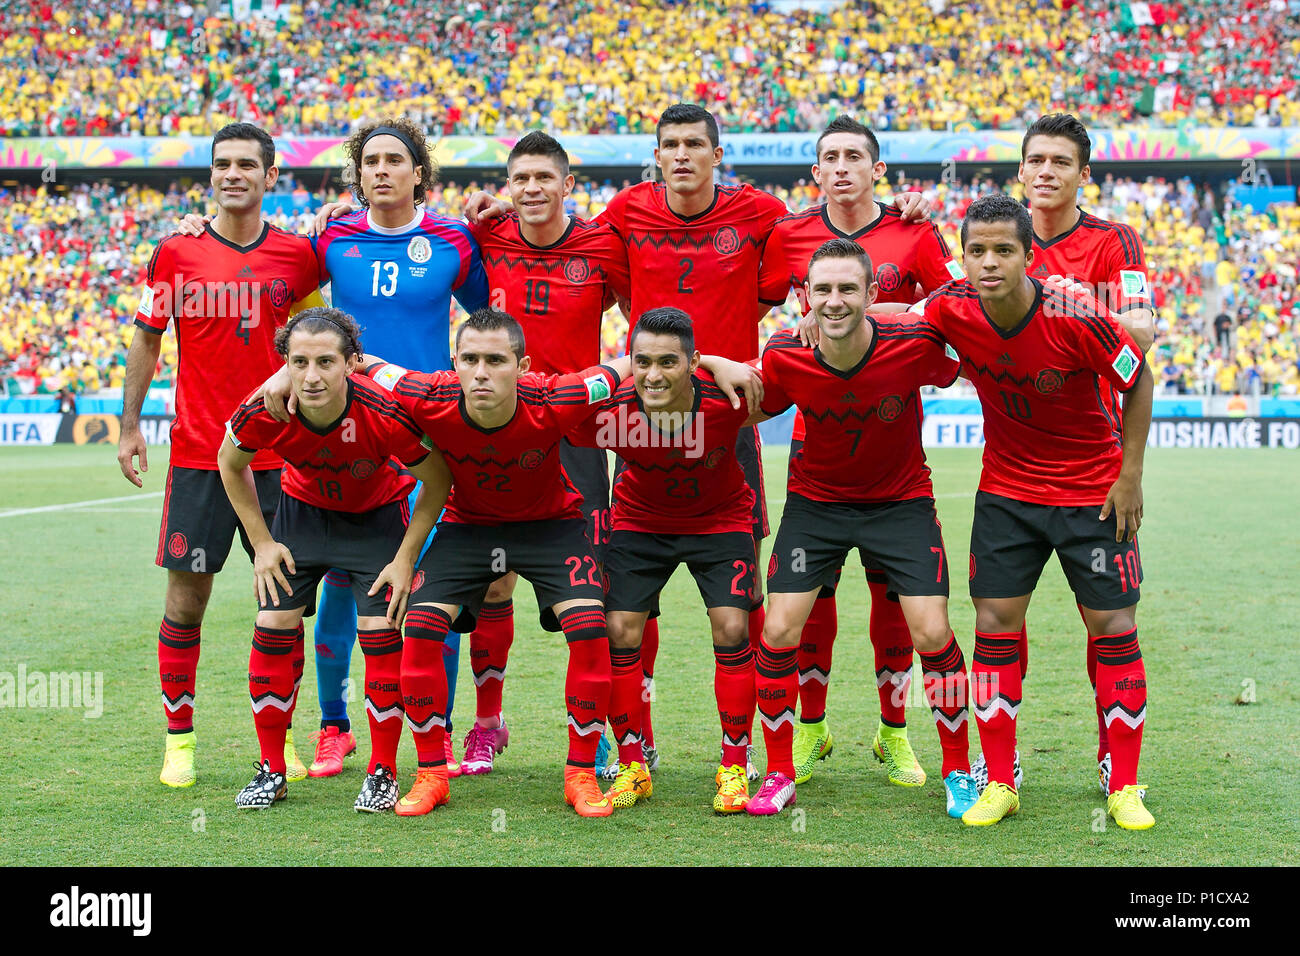 Preview of the first match of the German national football team at the FIFA World Cup 2018 in Russia: On 17.06.2018, the team of Jogi Loew meets Mexico in Mexico, The Mexican team, the team, team photo, team photo, before the game in two rows; hi.left to right: Rafael MARQUEZ (MEX), Guillermo OCHOA, goalie (MEX), Oribe PERALTA (MEX), Francisco RODRIGUEZ (MEX), Brazil - Mexico 0: 0, preliminary round Group A, match 17, on 17.06.2014 in Fortaleza; Football World Cup 2014 in Brazil from 12.06. - 13.07.2014. | usage worldwide - Stock Image